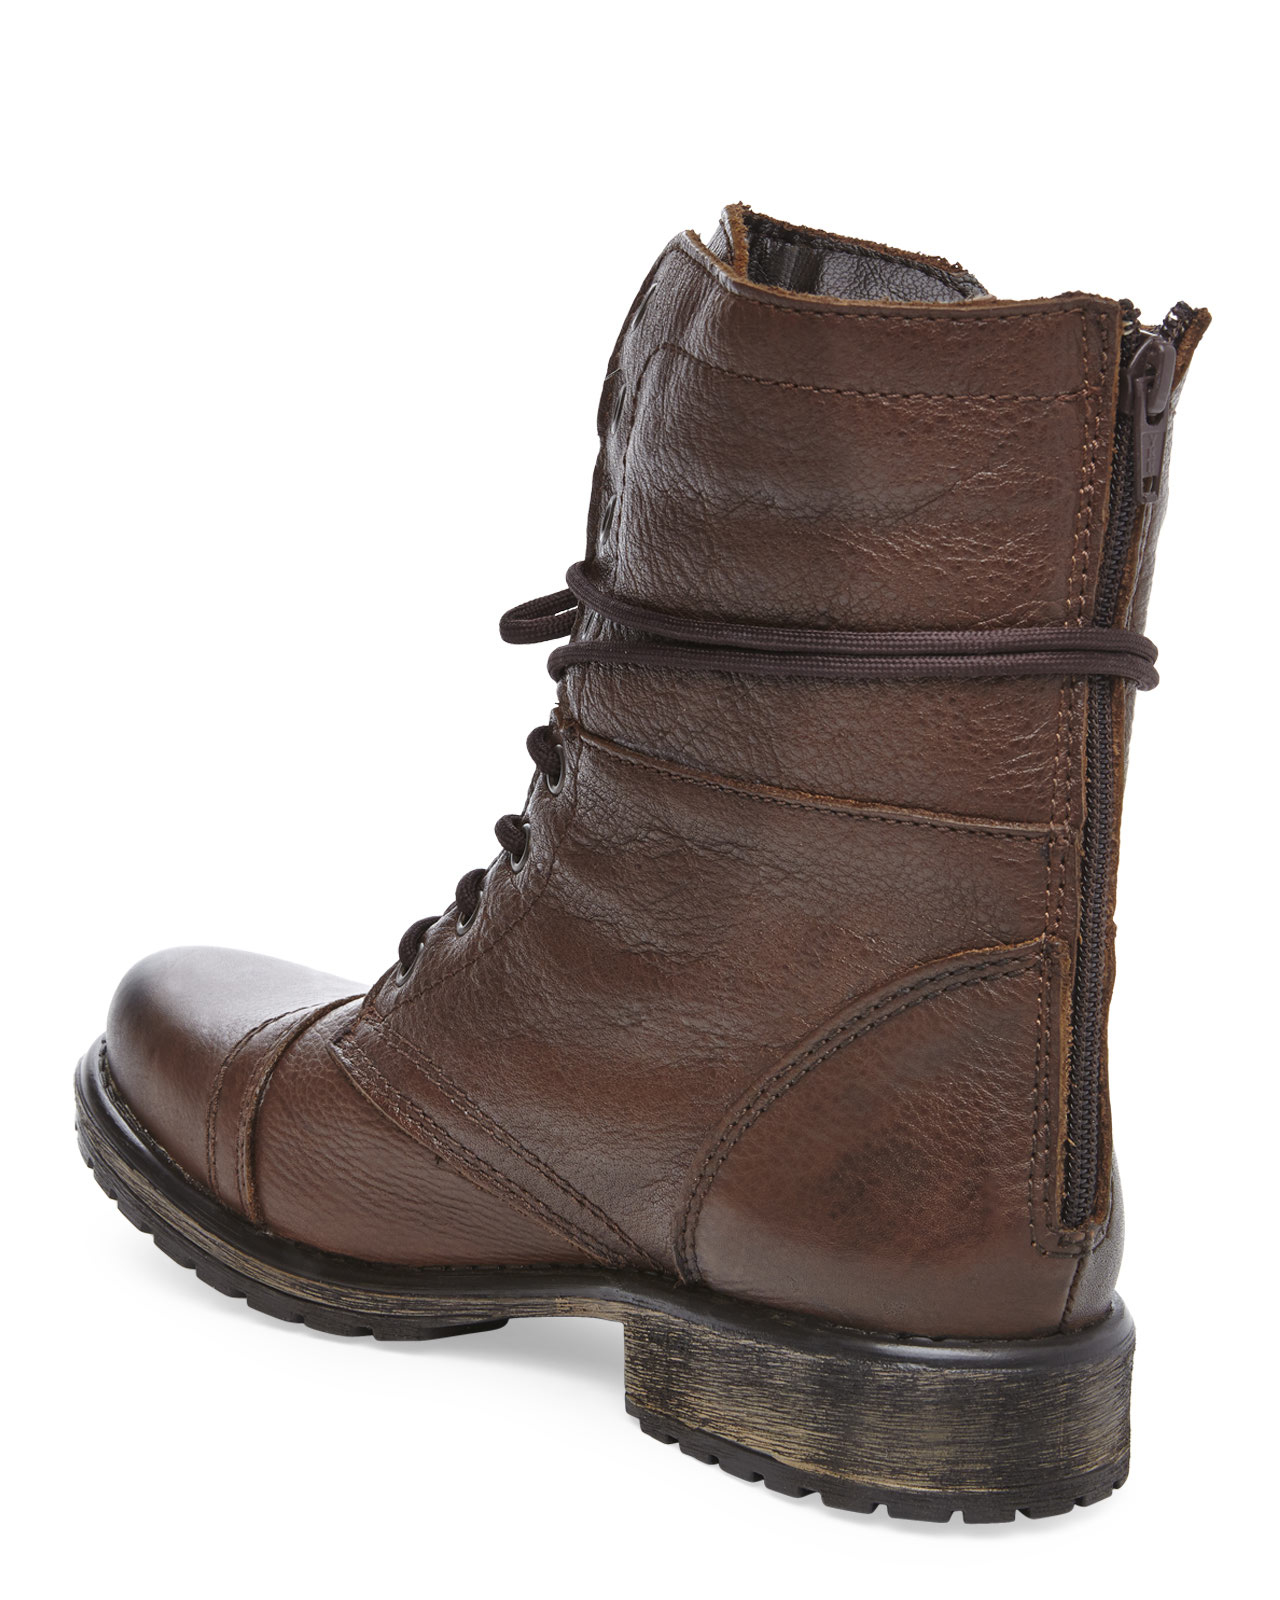 Steve madden Brown Fame Combat Boot in Brown | Lyst